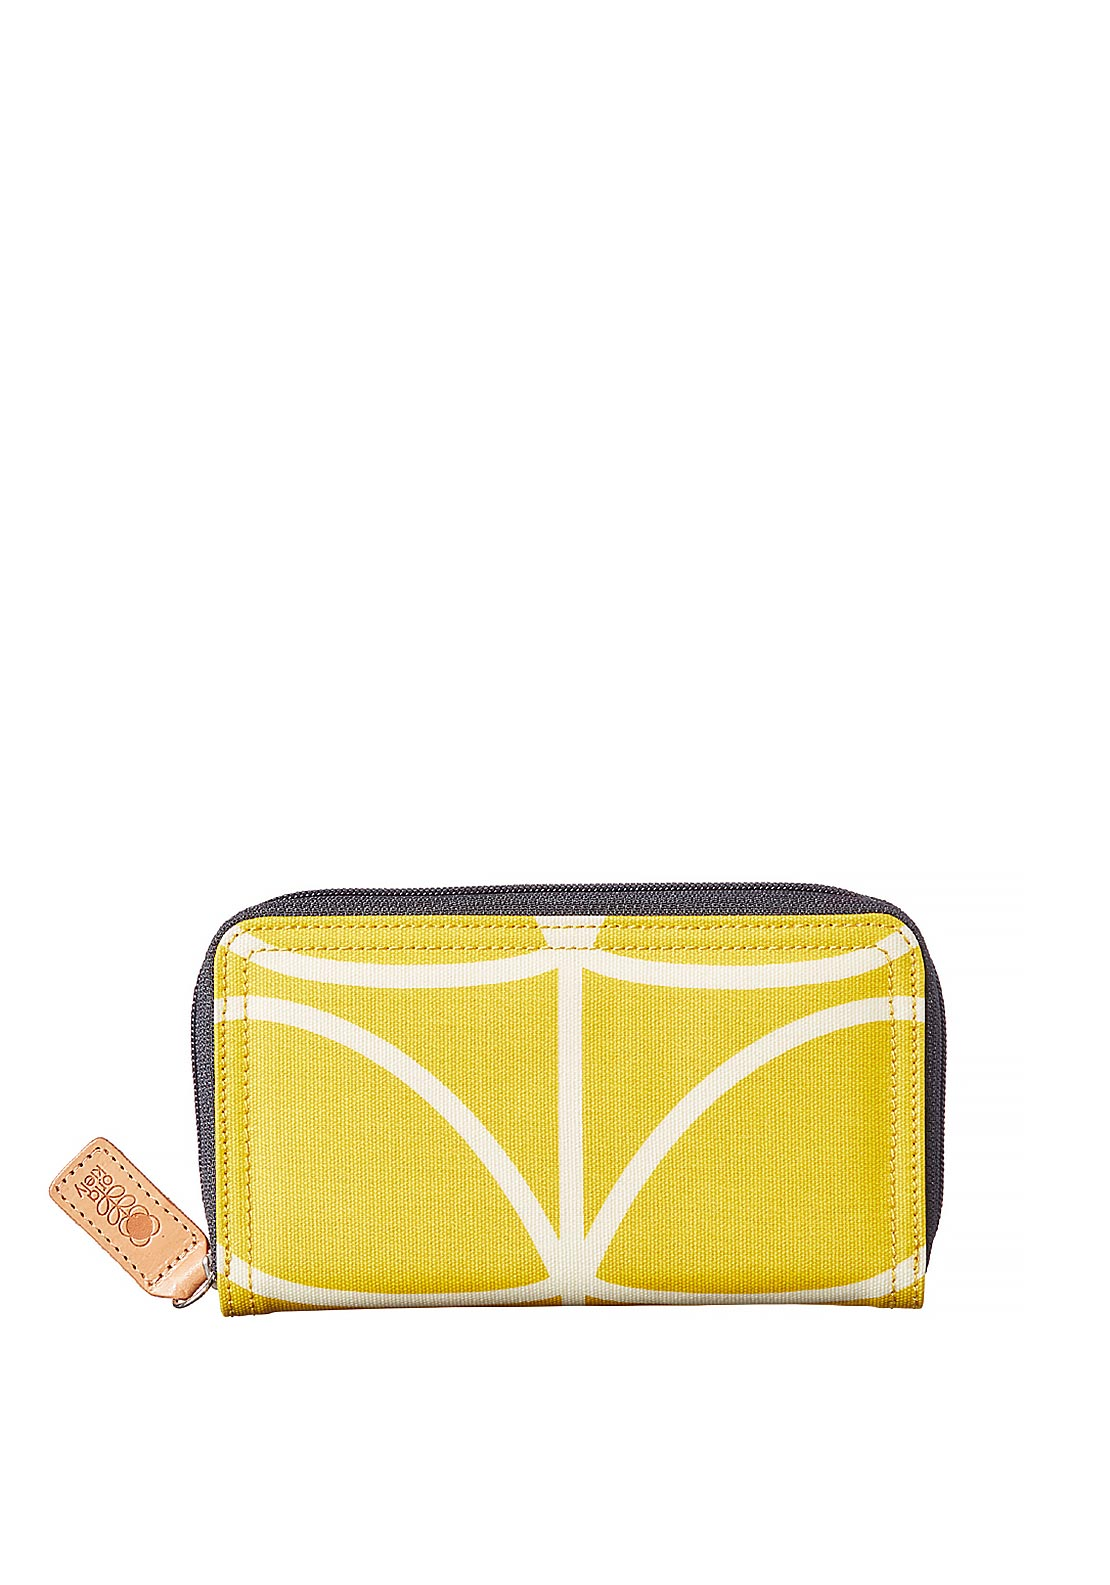 Orla Kiely Giant Linear Stem Big Zip Wallet, Dandelion